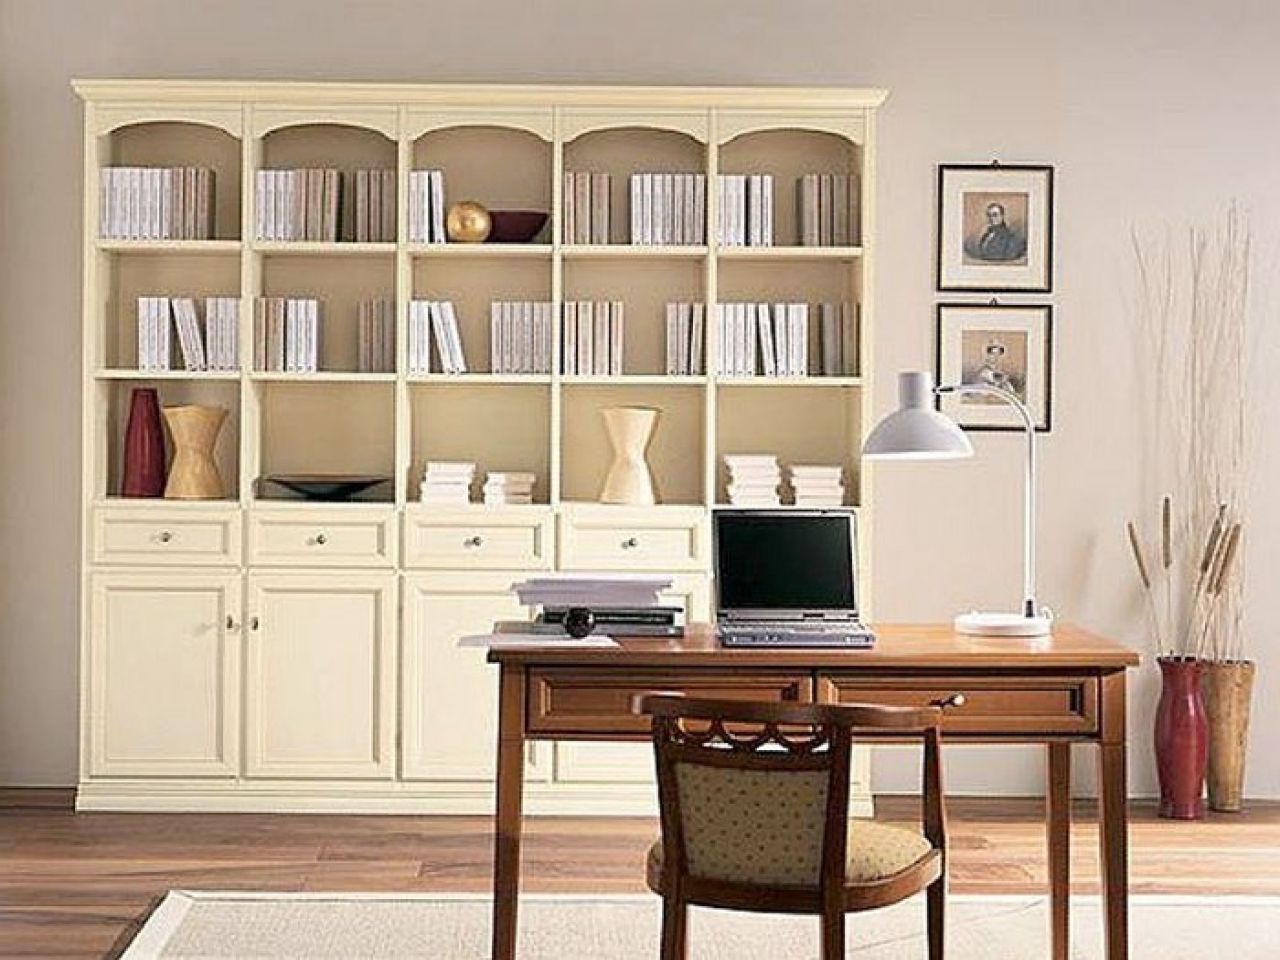 Newest Ideas For Old Bookcases Traditional Bookcase Design Cadbd Pertaining To Traditional Bookshelves Designs (View 8 of 15)